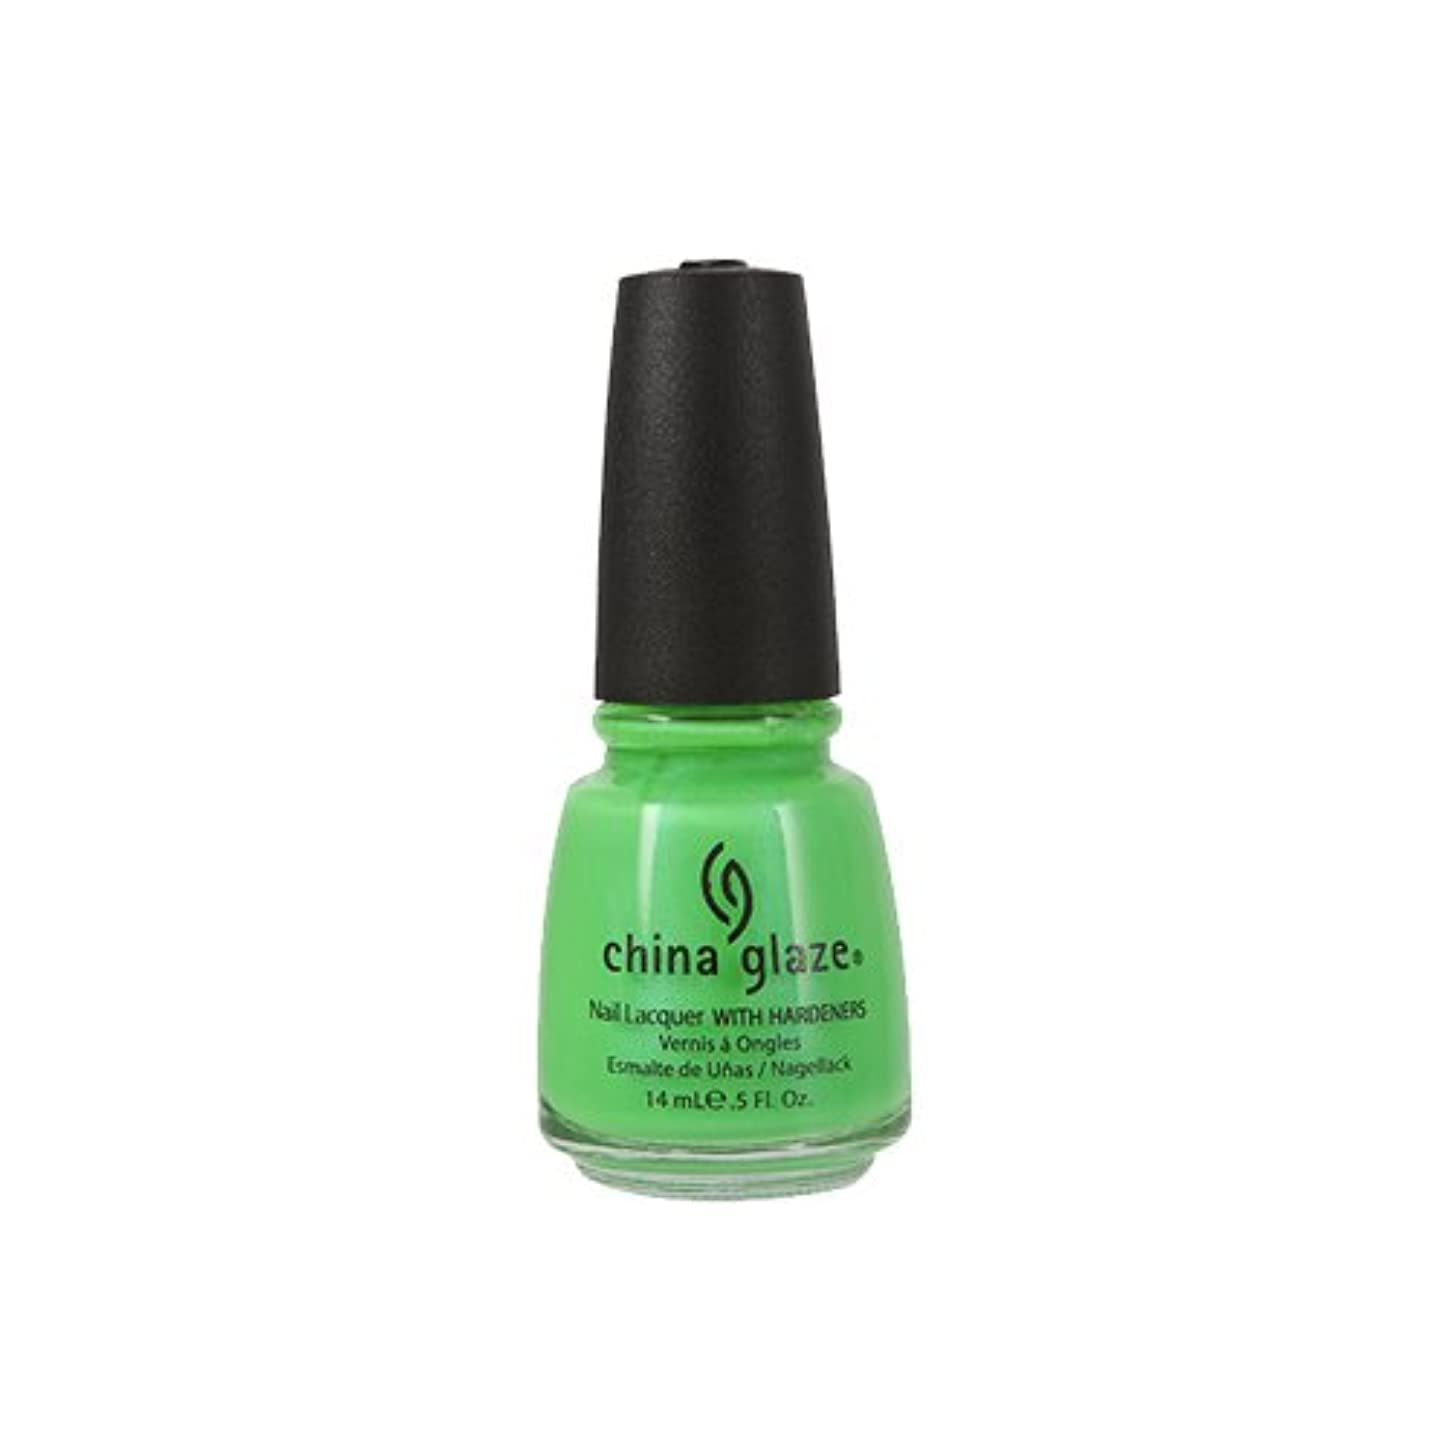 CHINA GLAZE Nail Lacquer with Nail Hardner - In The Lime Light Neon (並行輸入品)